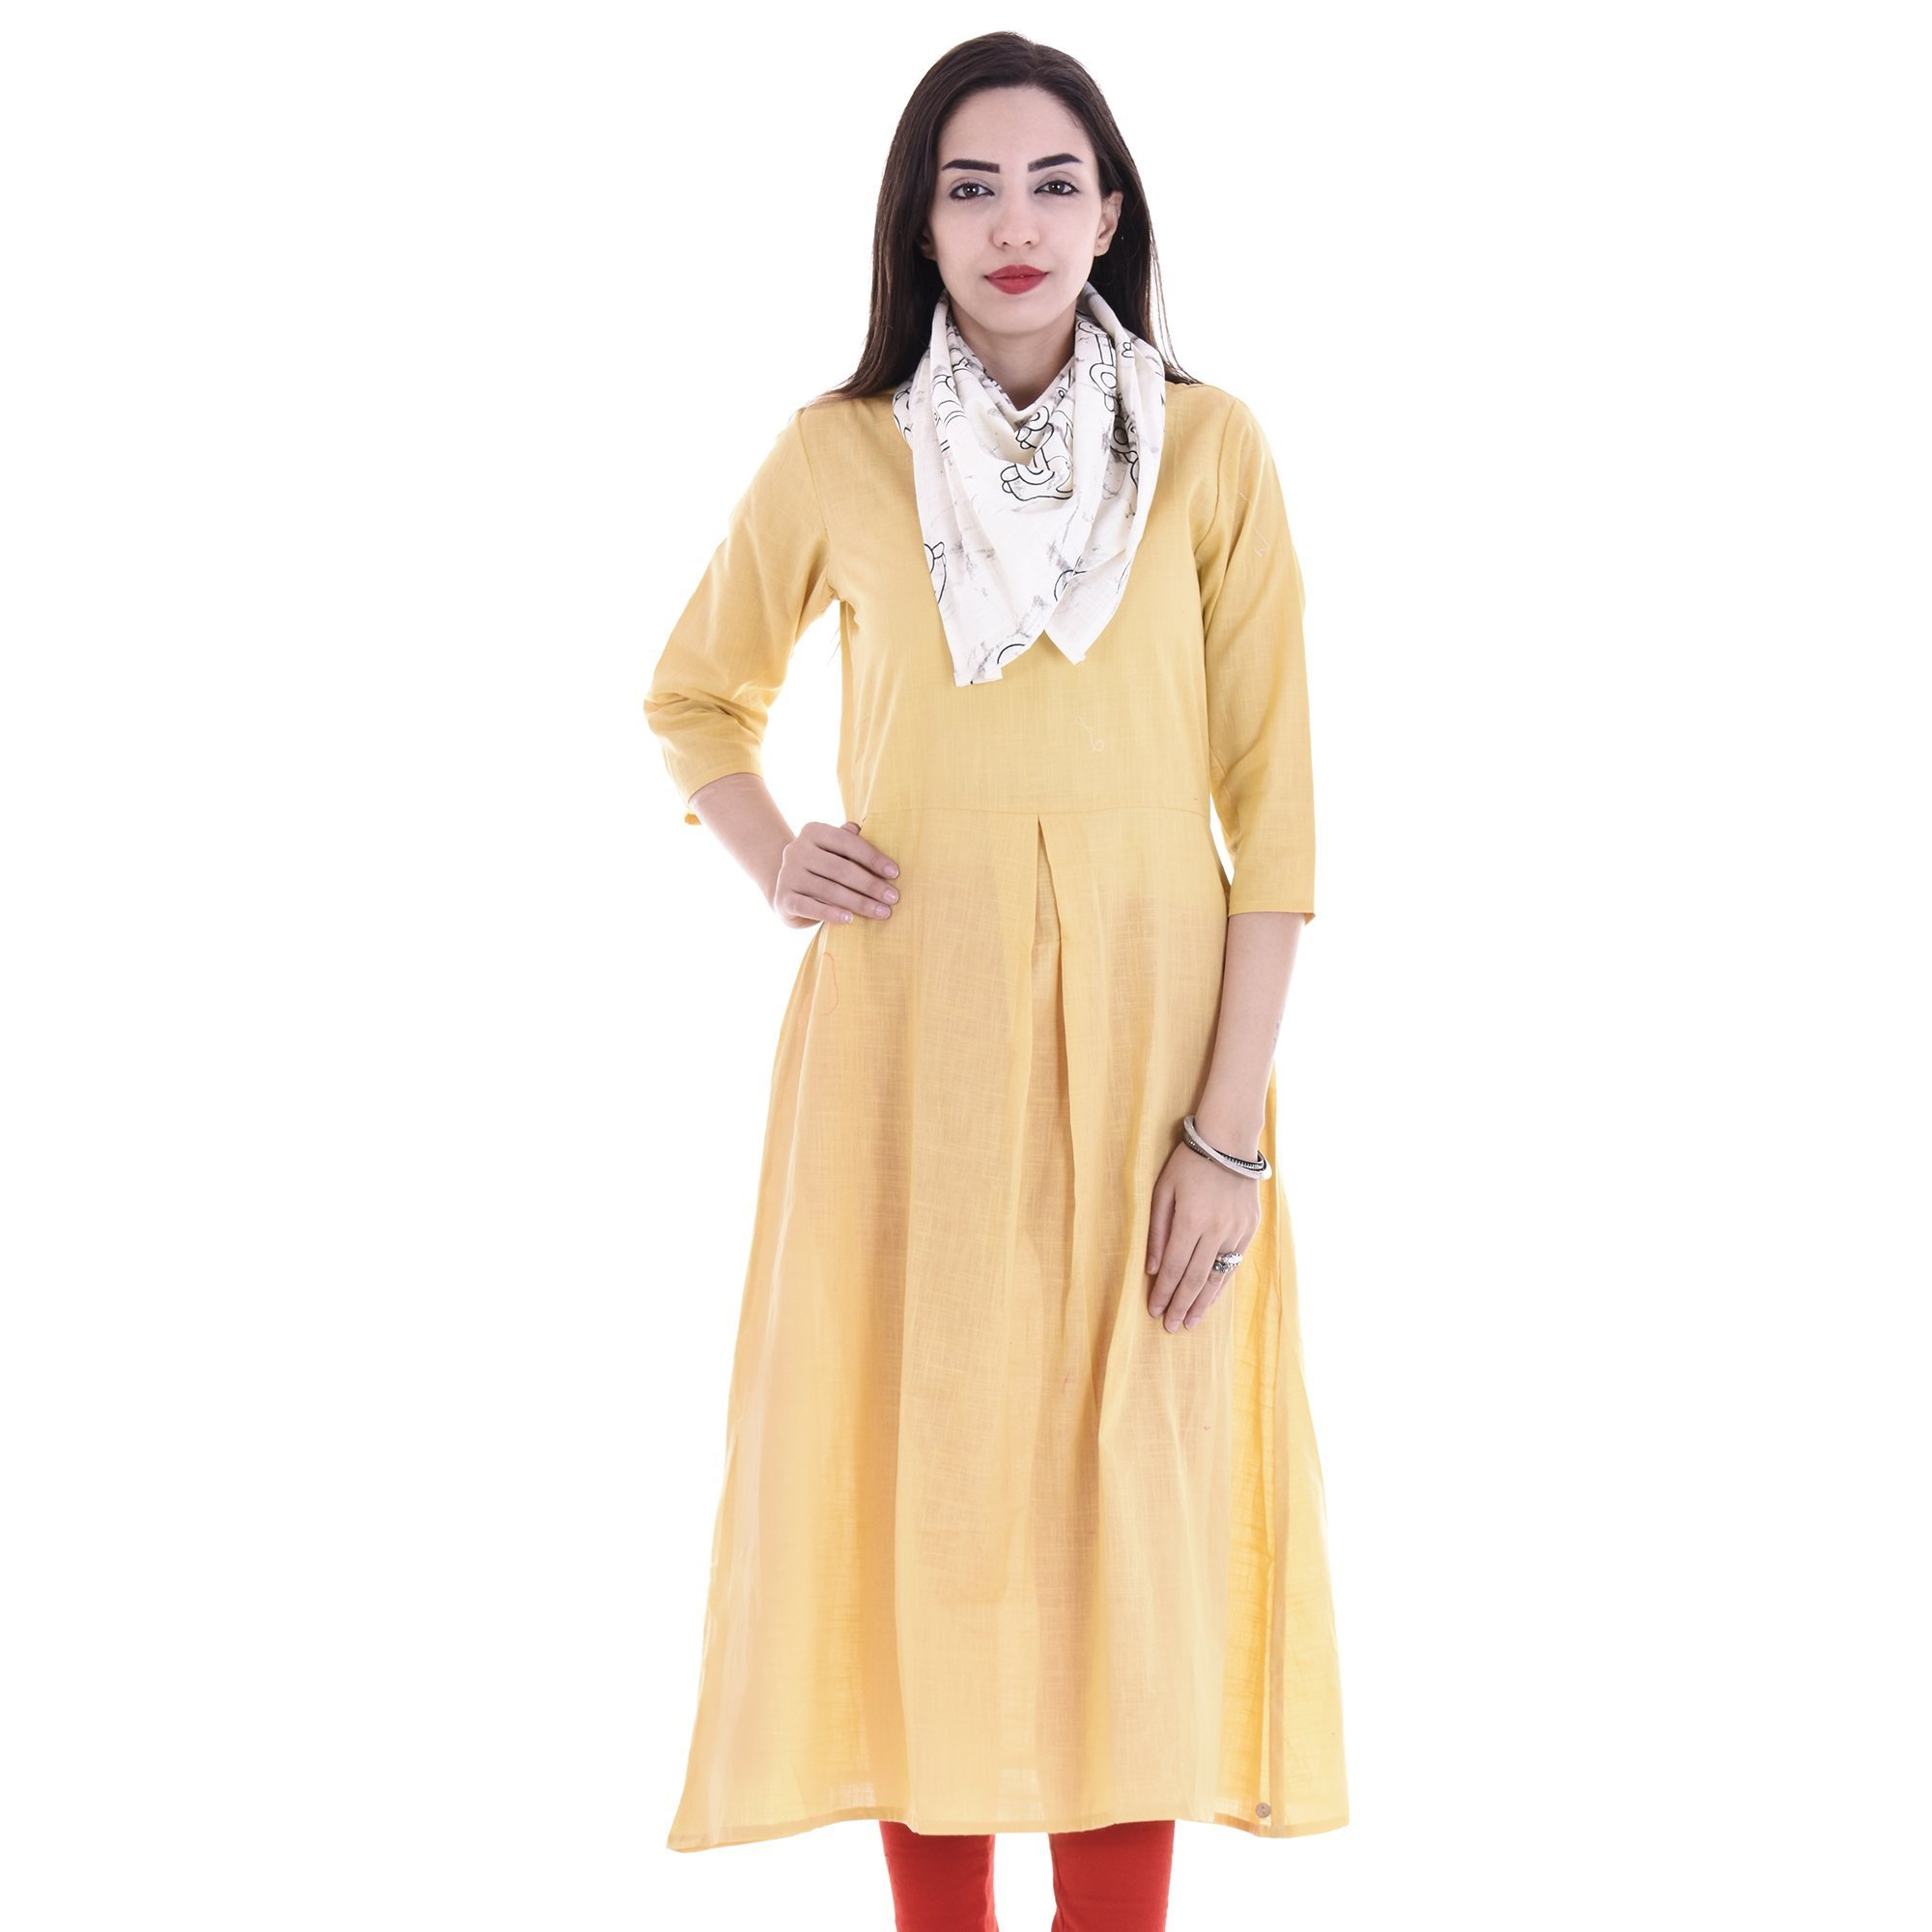 Chichi Indian Women Kurta Kurti 3/4 Sleeve X-Large Size Plain with Scarf Round Beige Top by CHI